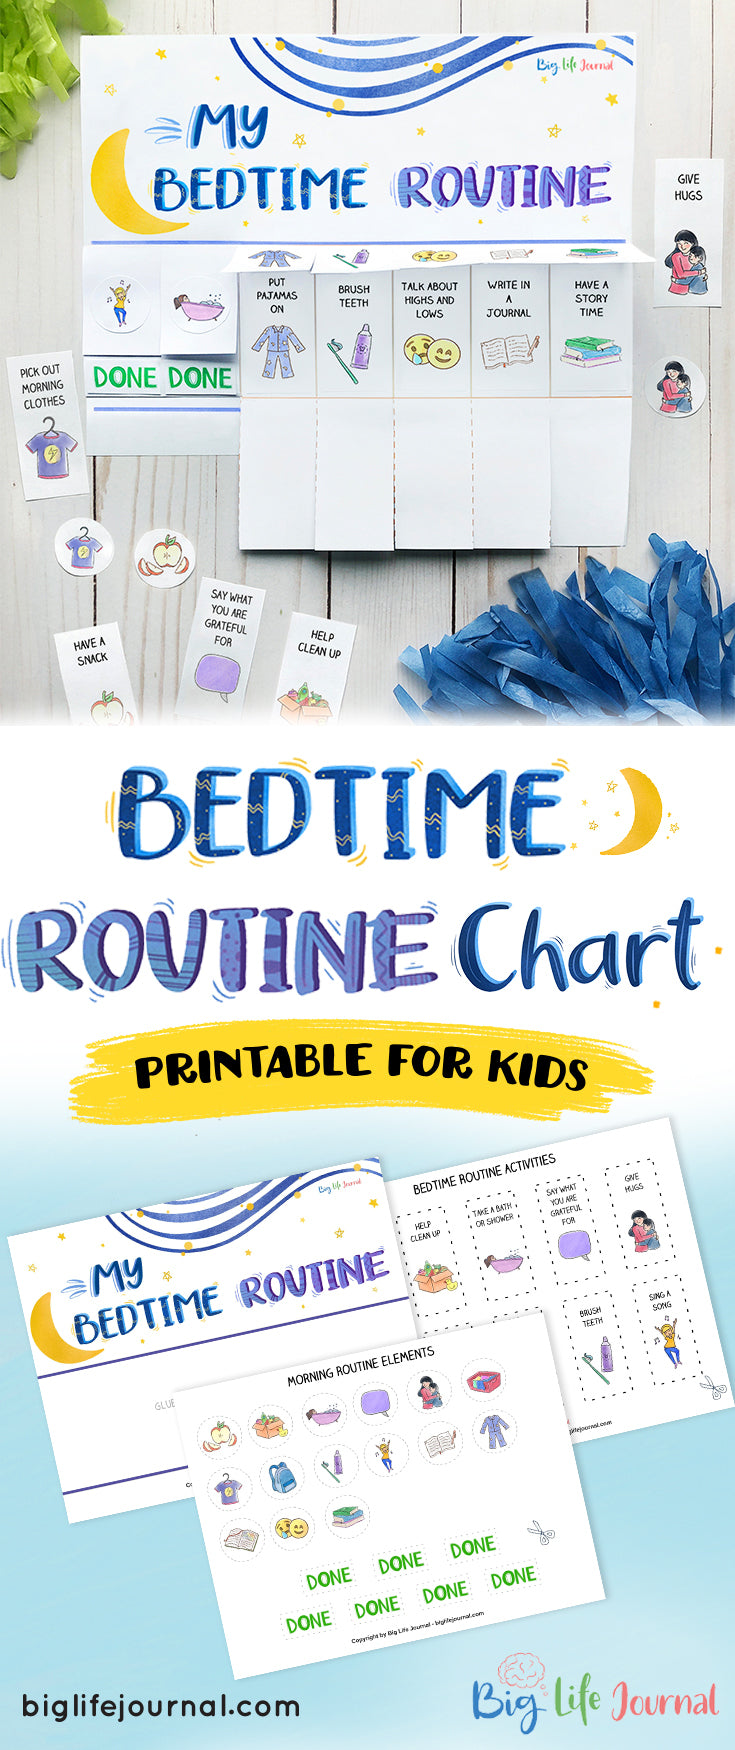 My Bedtime Routine printable for kids